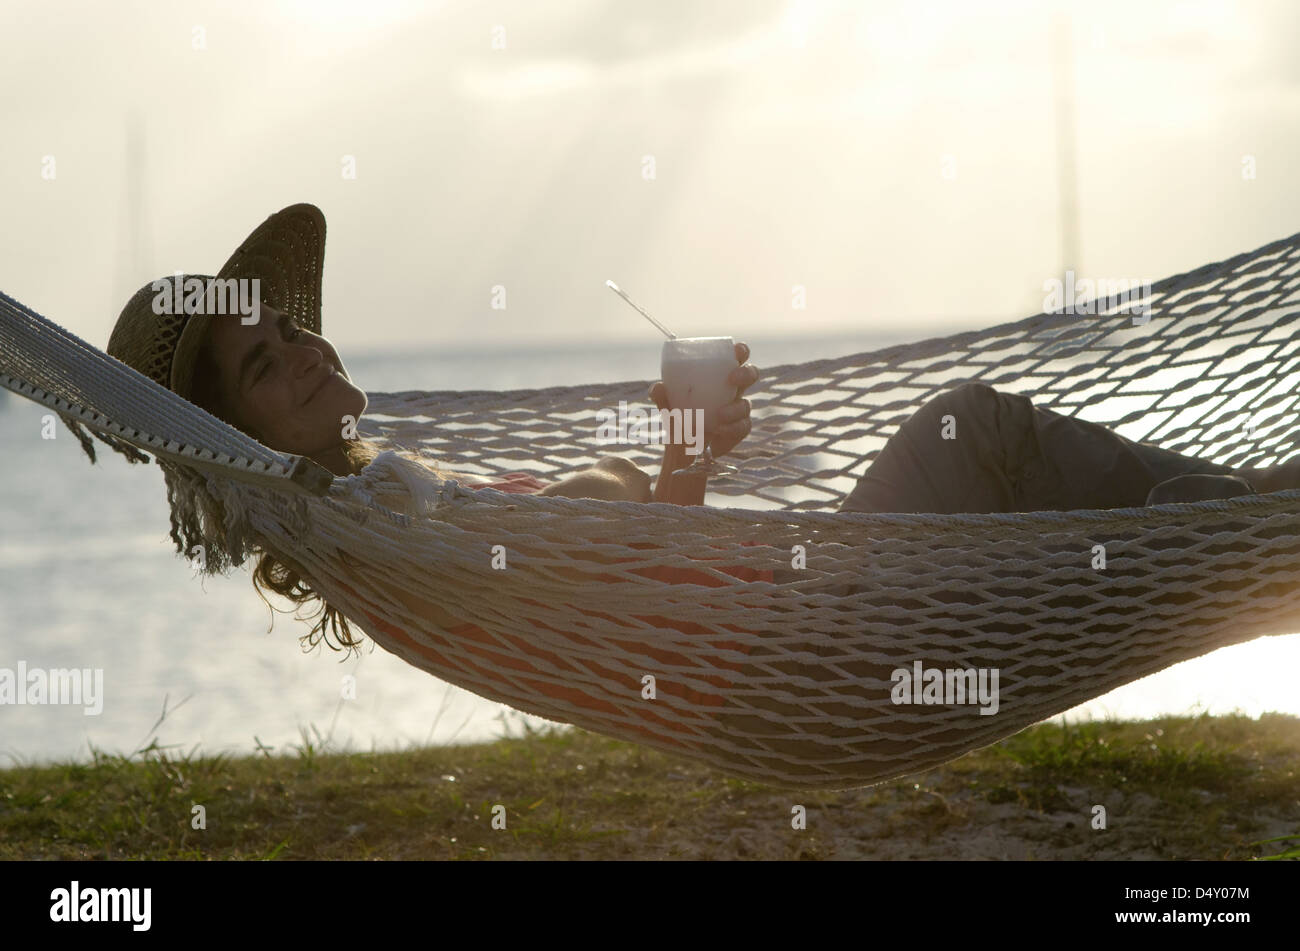 Relaxing in a hammock with a cocktail on the beach of Anegada, British Virgin Islands. - Stock Image